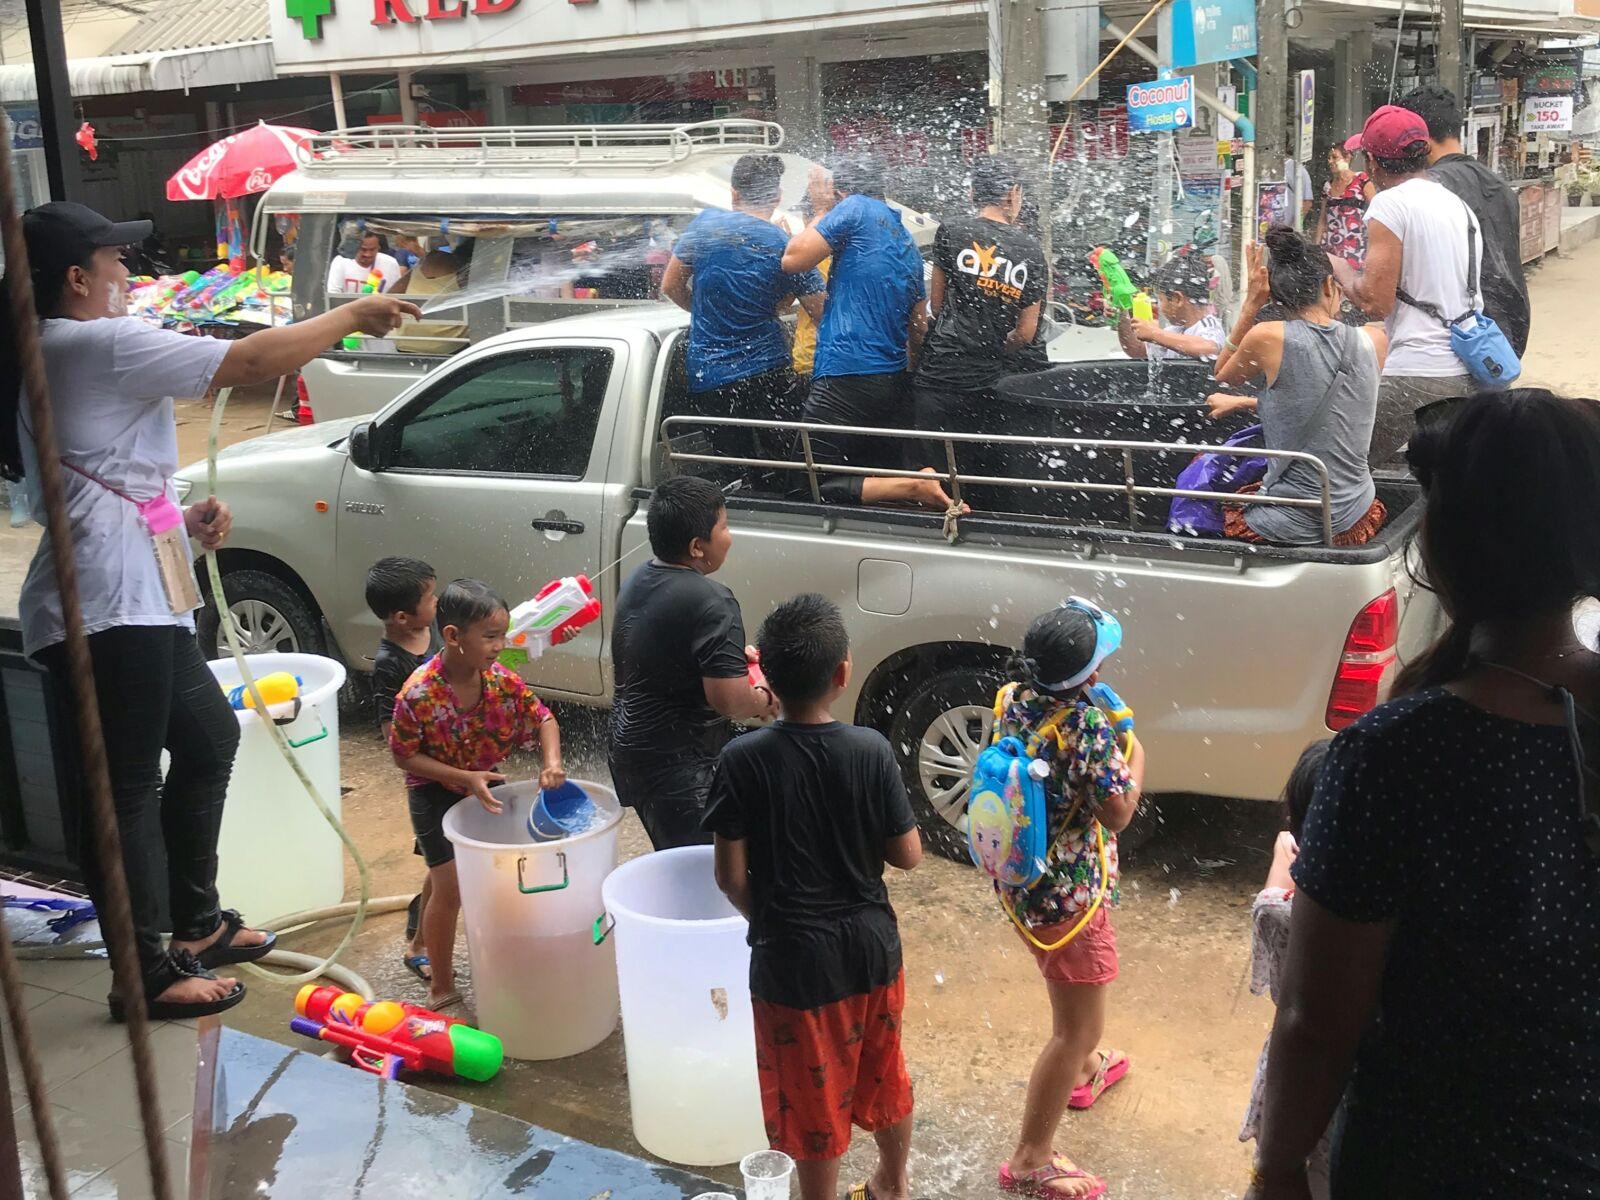 Social distancing for Songkran, Thailand's New Year water festival | News by The Thaiger